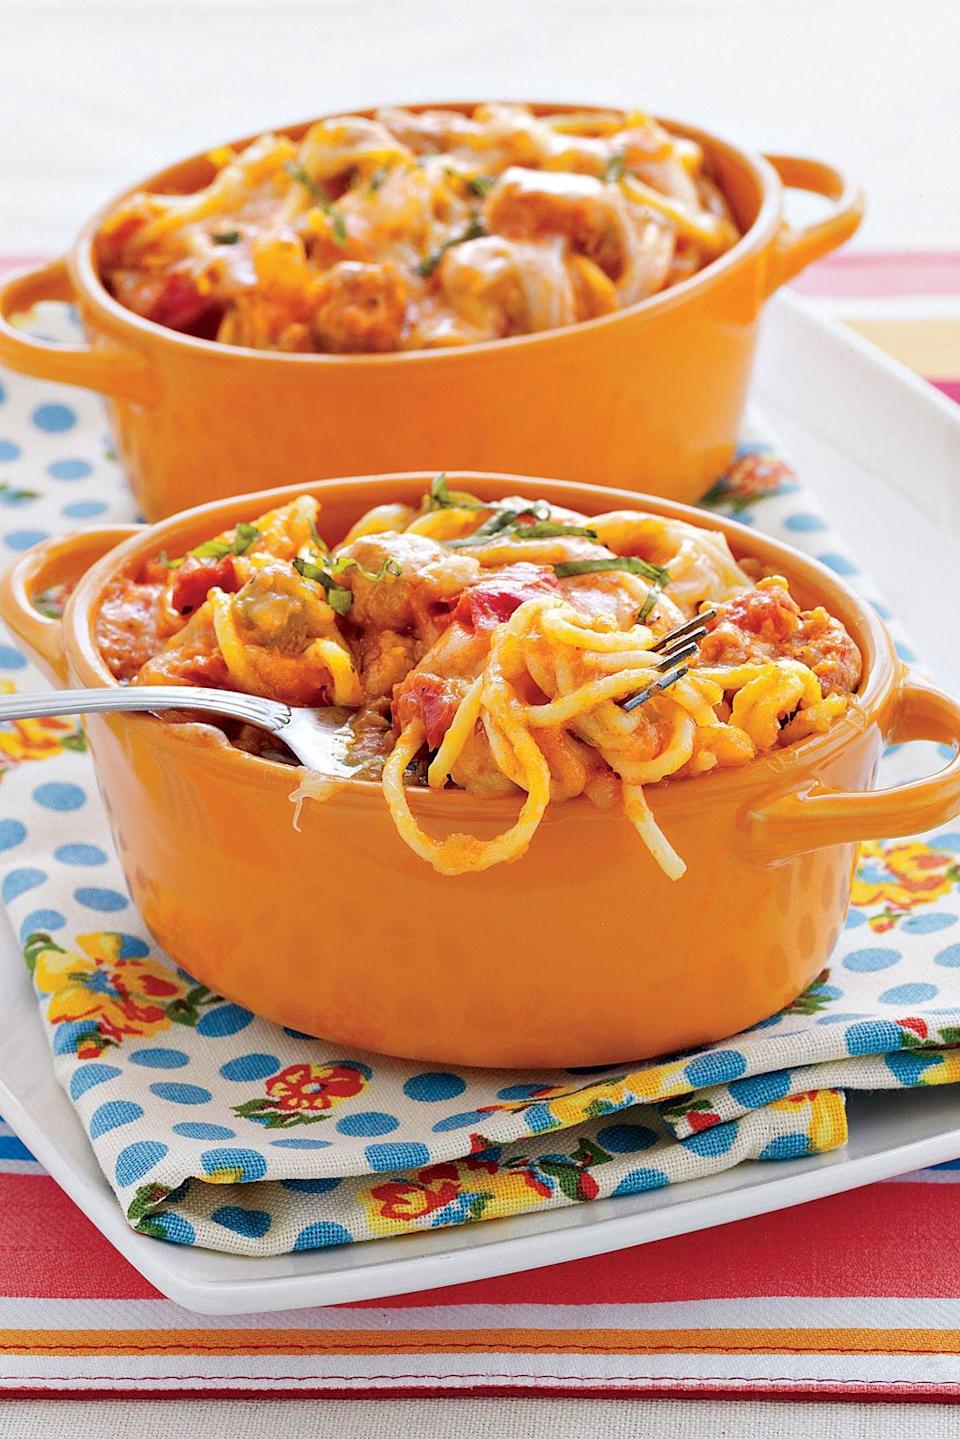 """<p><strong>Recipe: <a href=""""http://www.myrecipes.com/recipe/baked-four-cheese-spaghetti"""" rel=""""nofollow noopener"""" target=""""_blank"""" data-ylk=""""slk:Baked Four-Cheese Spaghetti with Italian Sausage"""" class=""""link rapid-noclick-resp"""">Baked Four-Cheese Spaghetti with Italian Sausage</a></strong></p> <p>Open sausage casings using kitchen shears; then just squeeze the sausage into the pan for browning.</p>"""